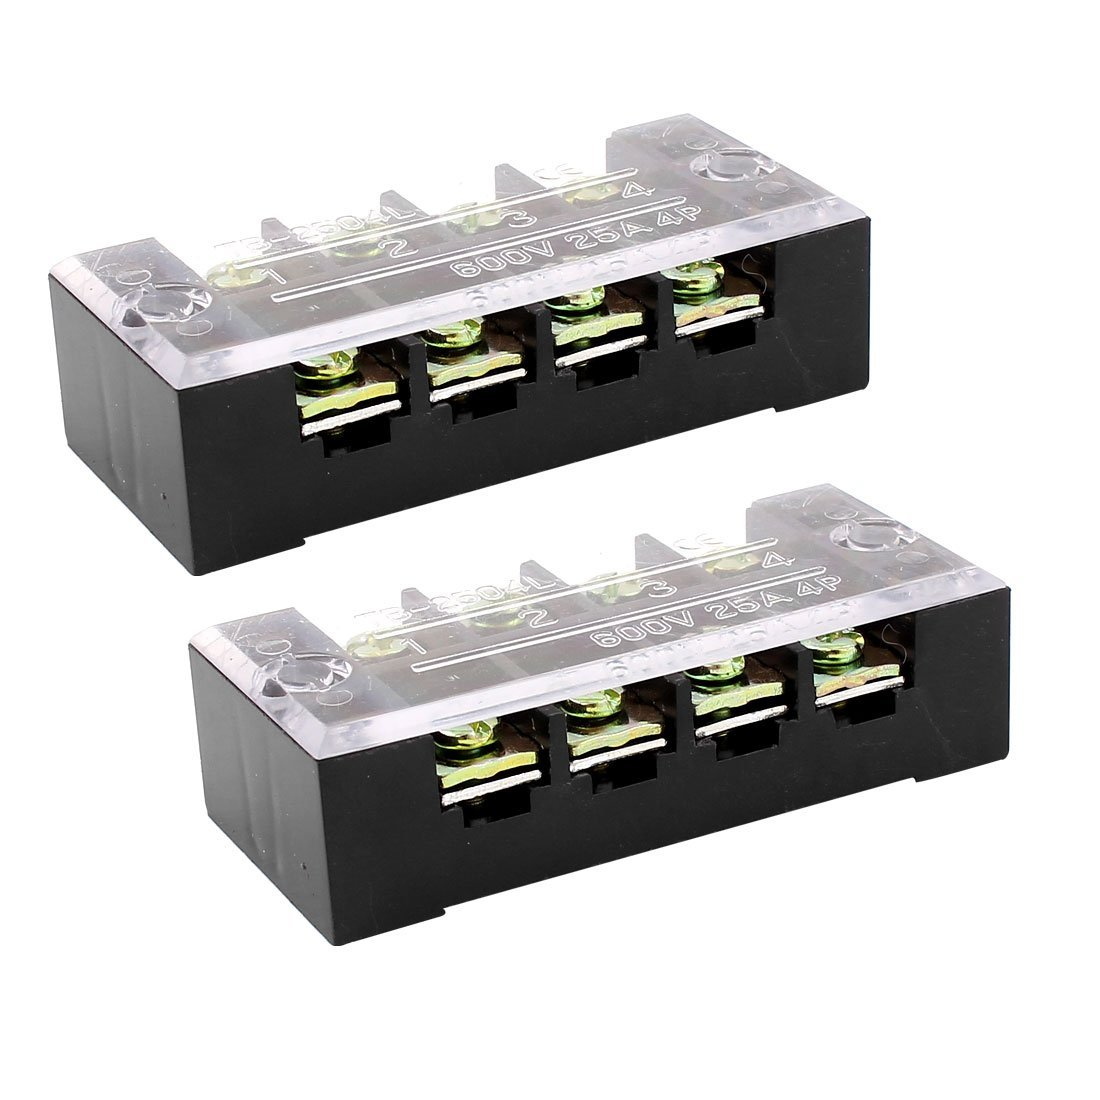 Aexit 2pcs 600V 25A 4 Position Dual Row Barrier Terminal Block Strip w Cover